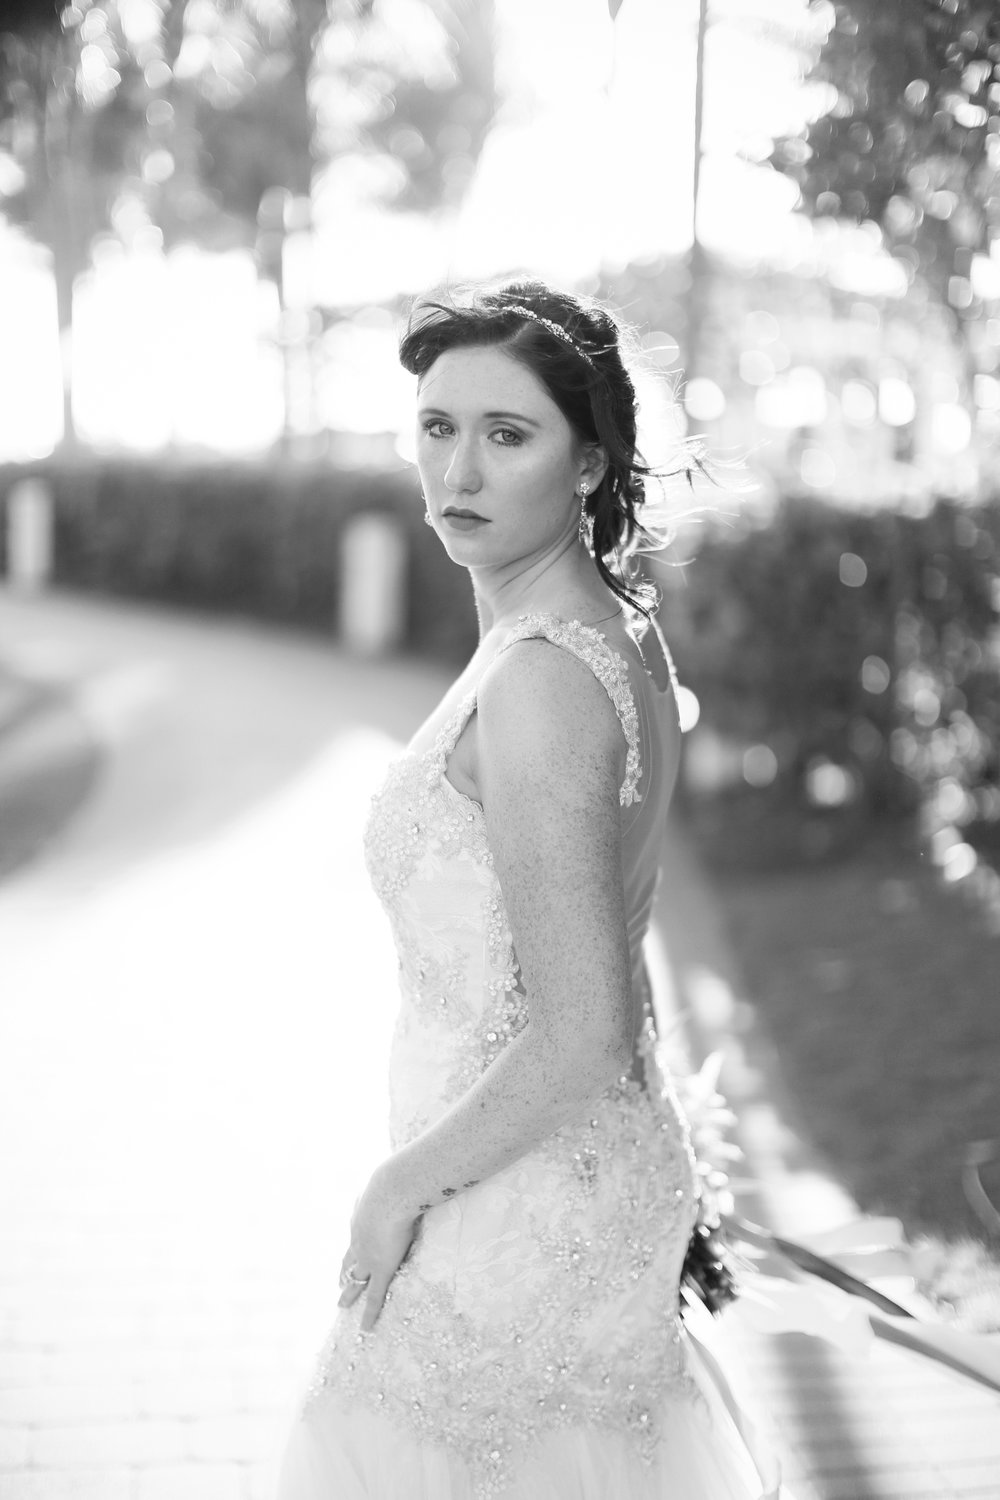 audreysnow-photography-naples-wedding-photographer_4597.jpg